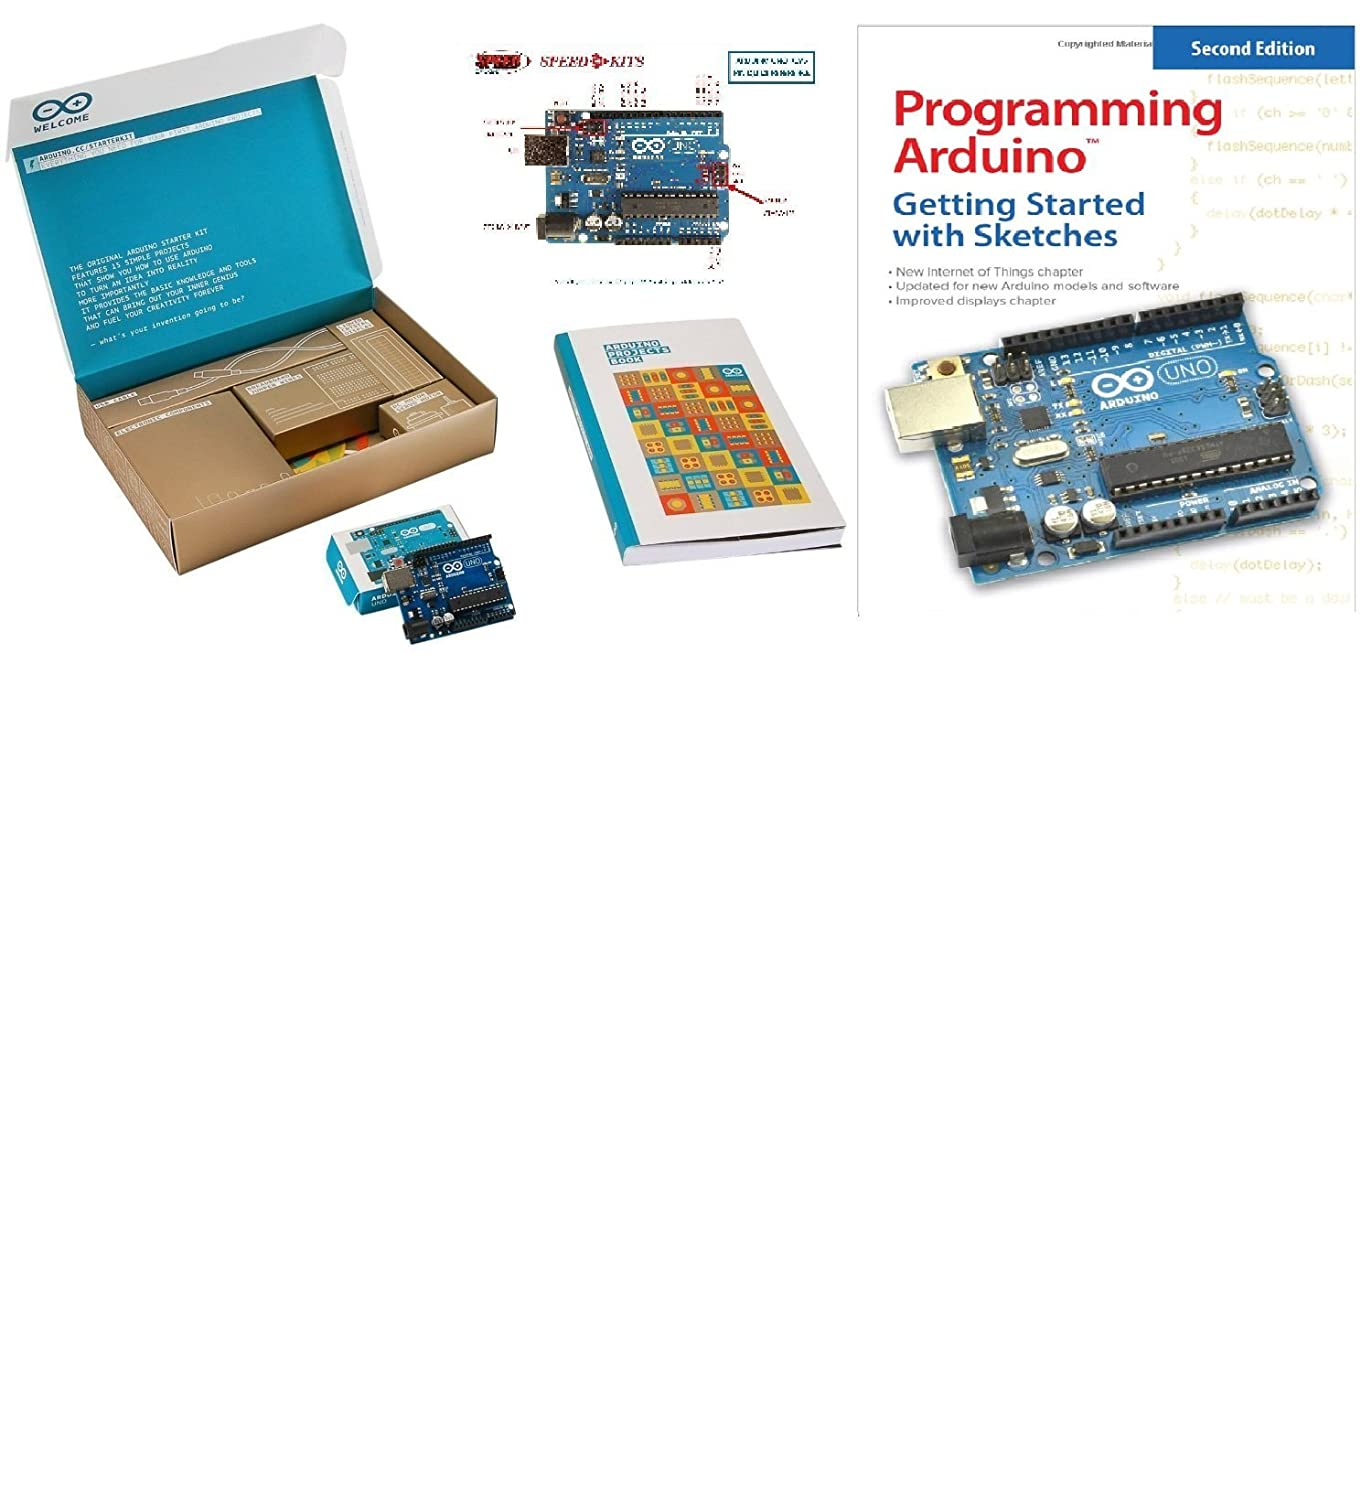 The Official Starter Kit For Arduino Uno R3 Advanced 13 Arduinokit With Programming Getting Started Sketches By Simon Monk Computers